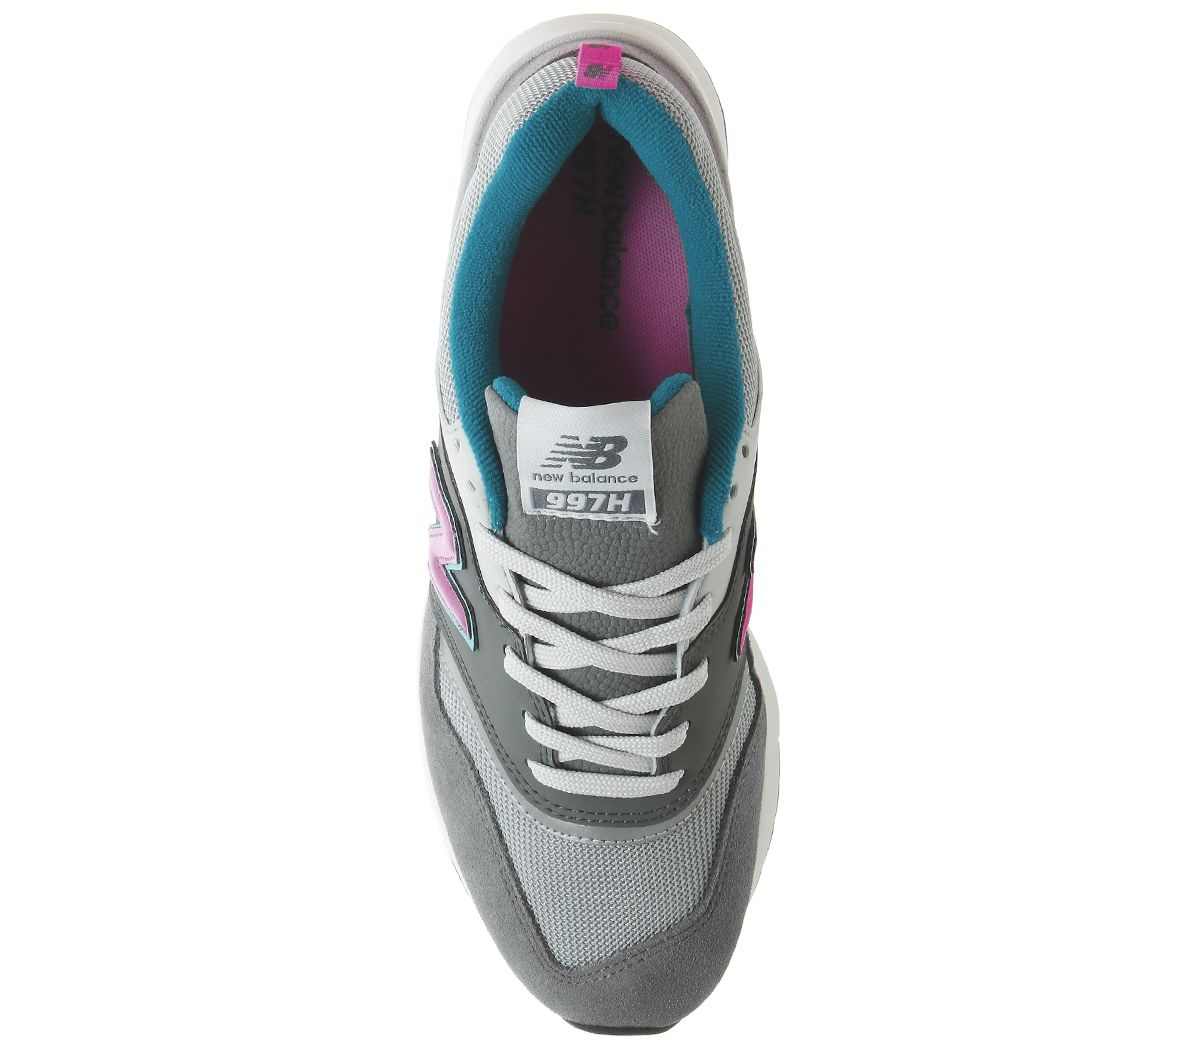 New-Balance-997-Trainers-Castlerock-Peony-Trainers-Shoes thumbnail 10